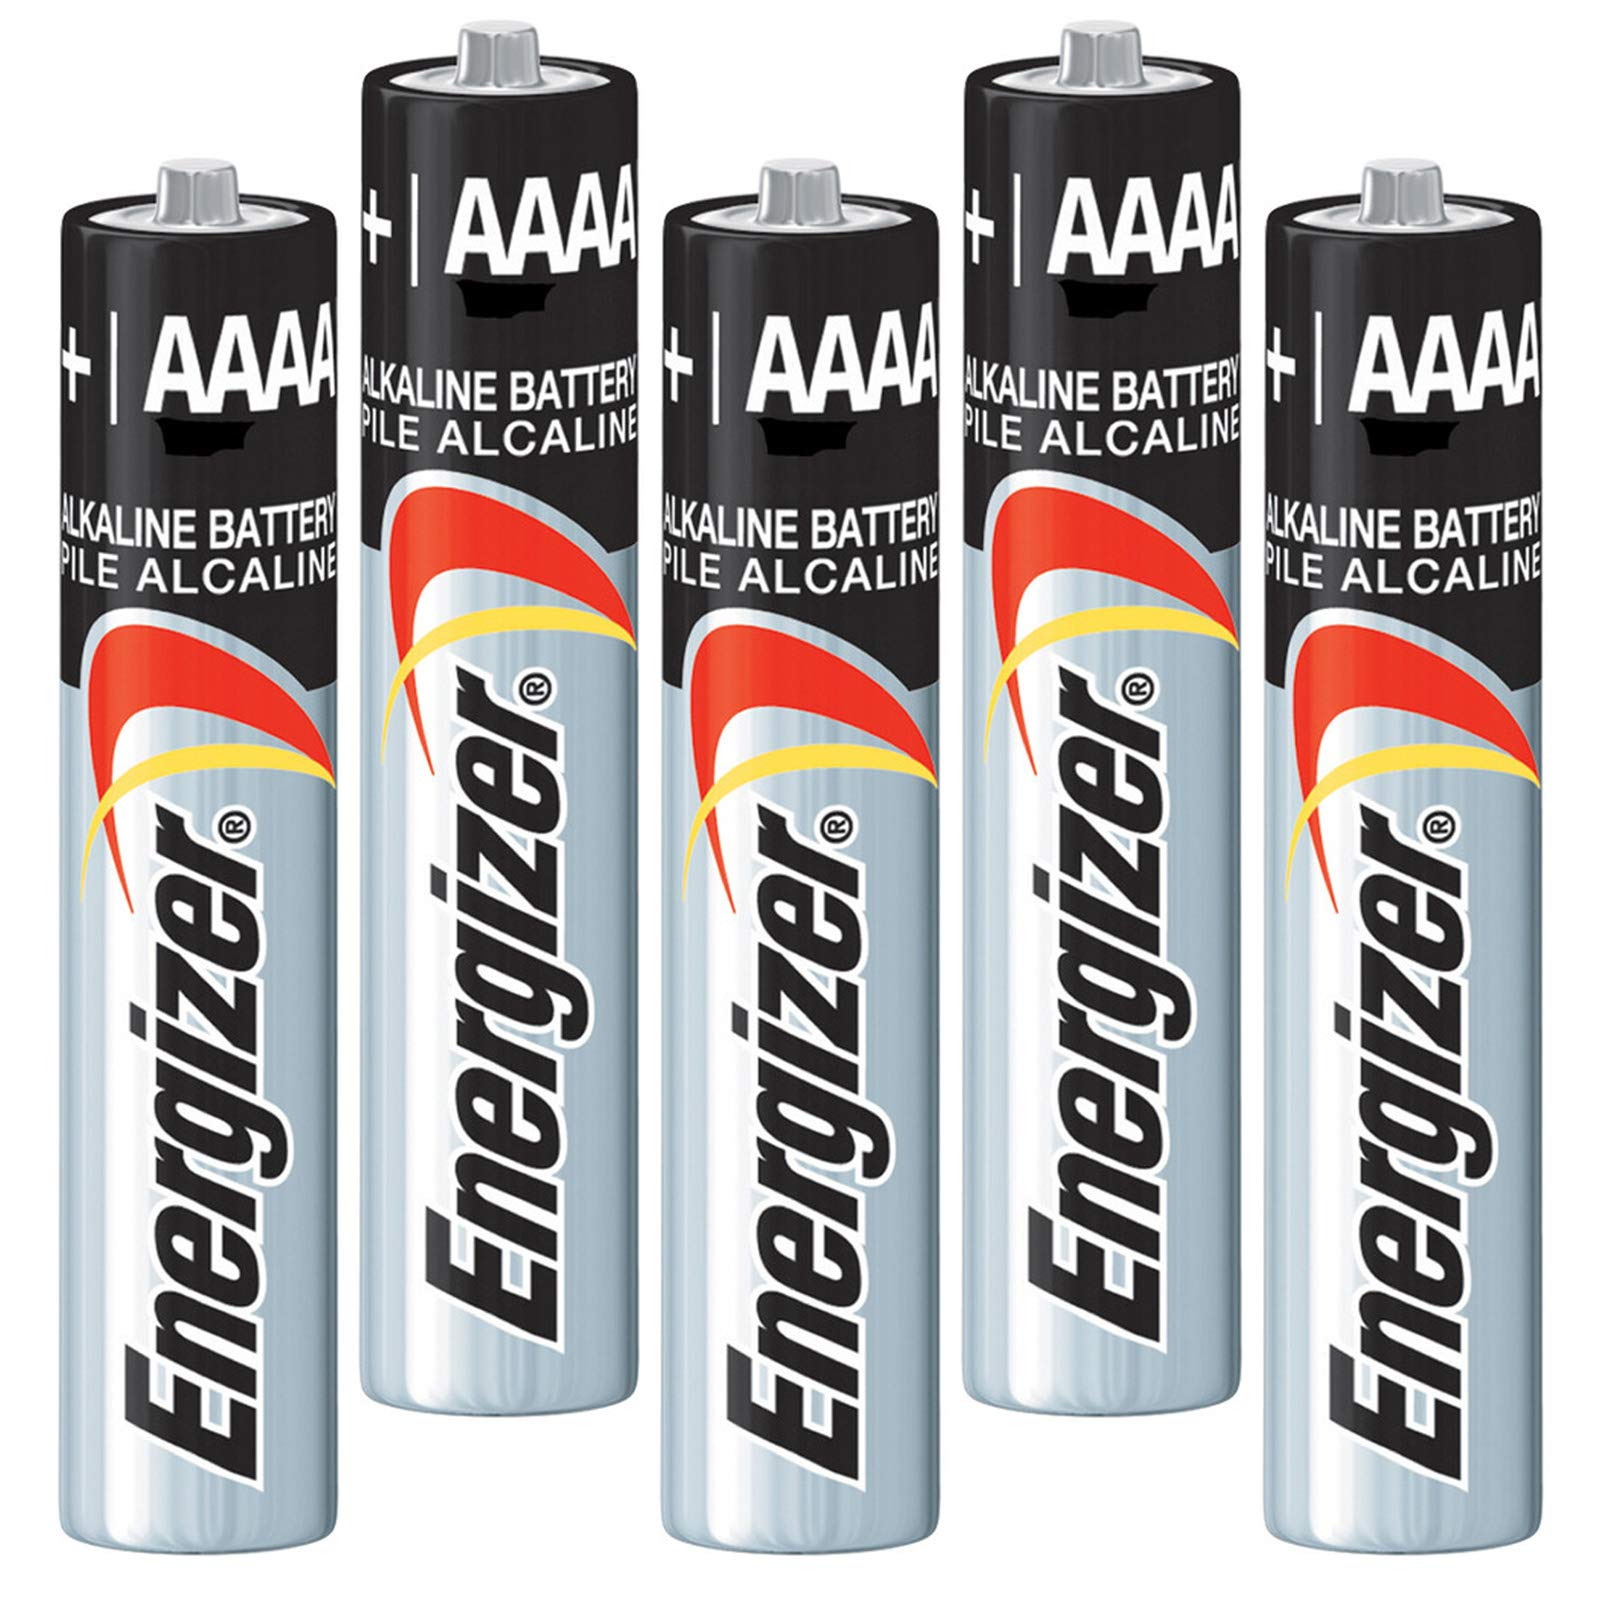 Energizer E96 1.5v Alkaline Battery AAAA Replaces LR8D425 MN2500 FAST USA SHIP by Exell Battery